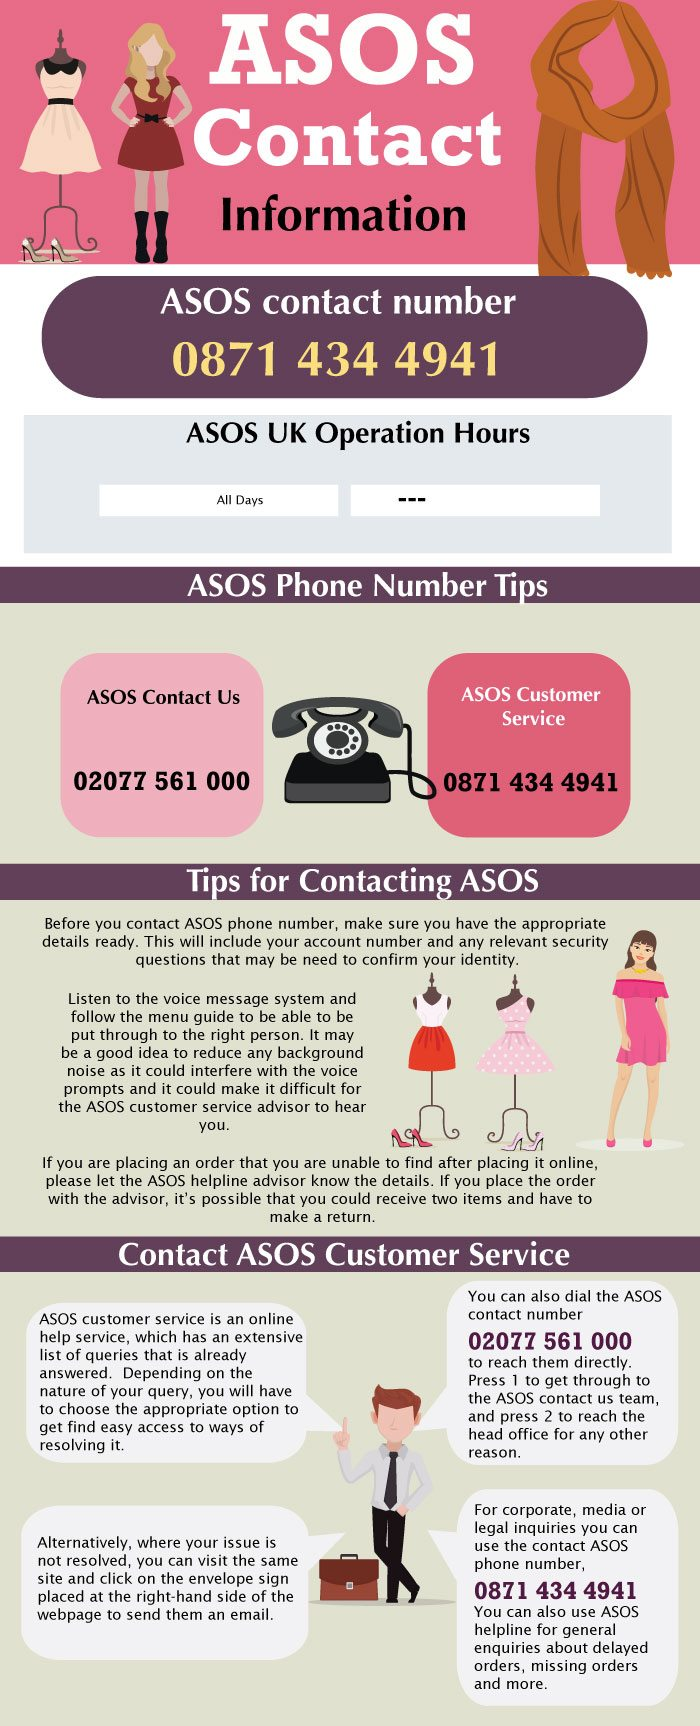 ASOS Phone Number